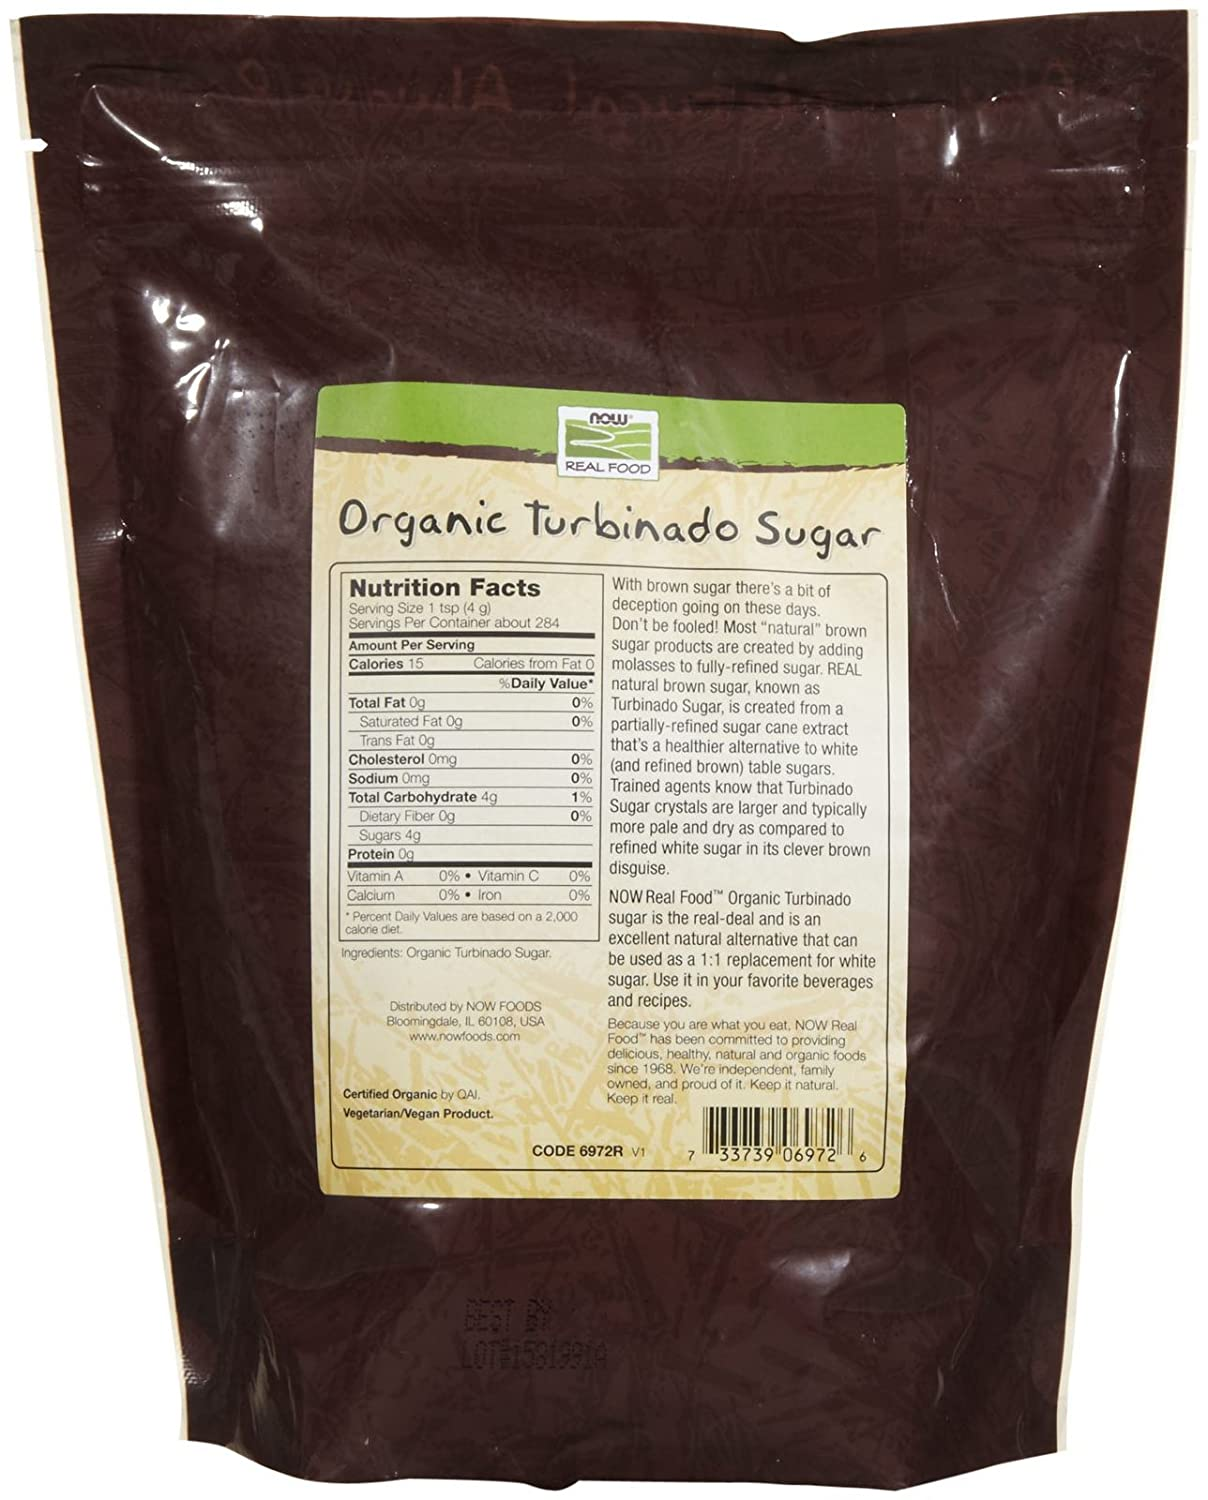 NOW Foods Organic Turbinado Sugar Image 2